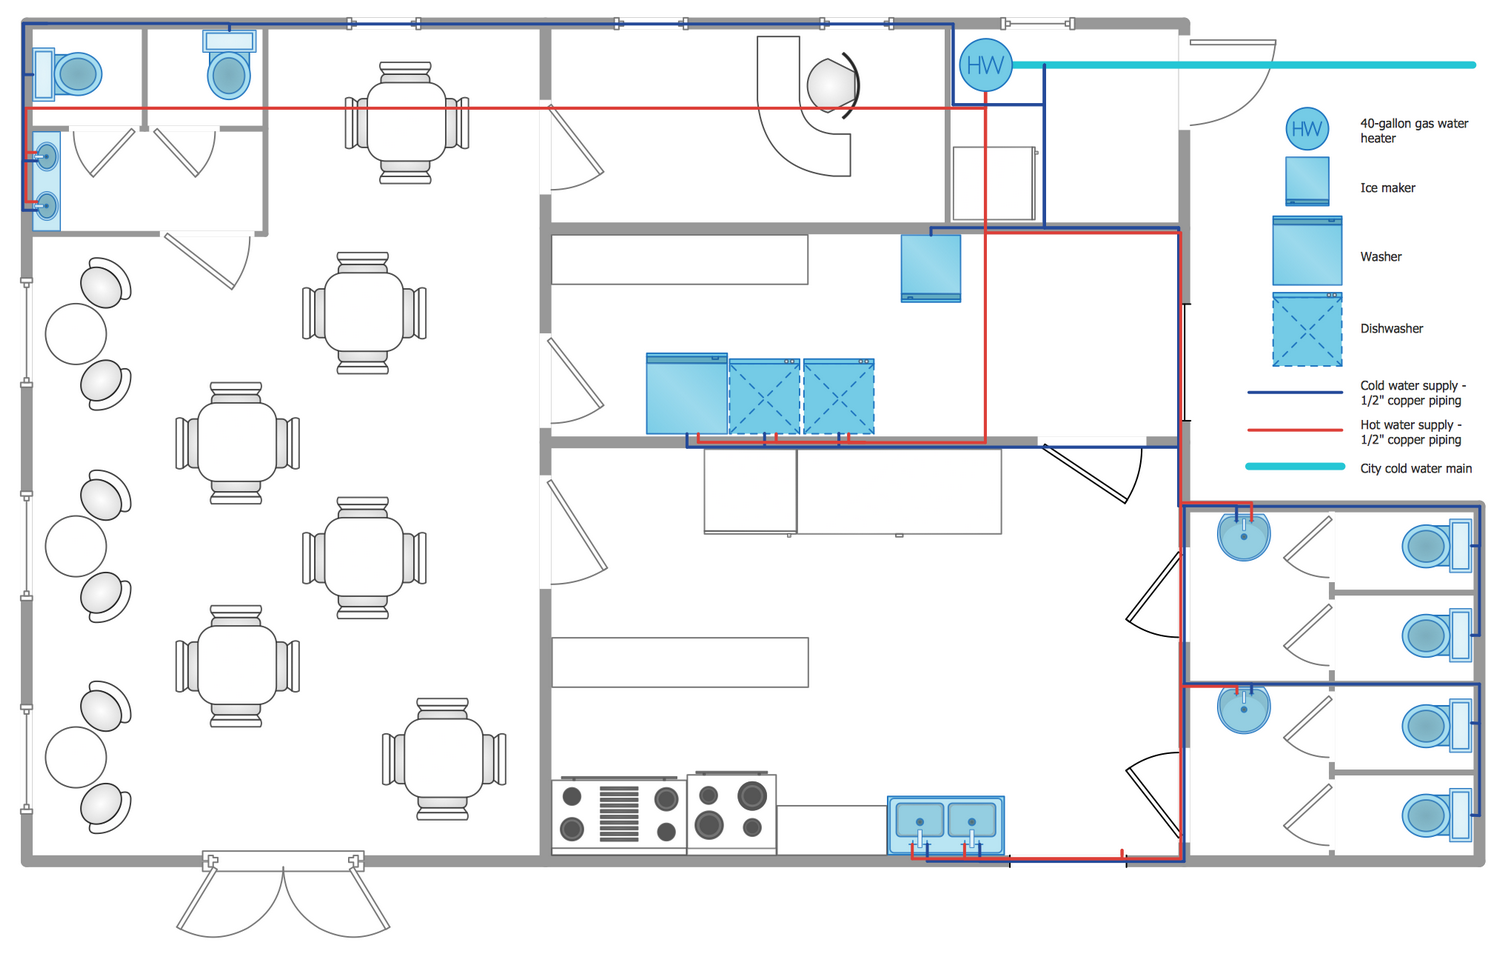 plumbing and piping plans [ 1500 x 957 Pixel ]